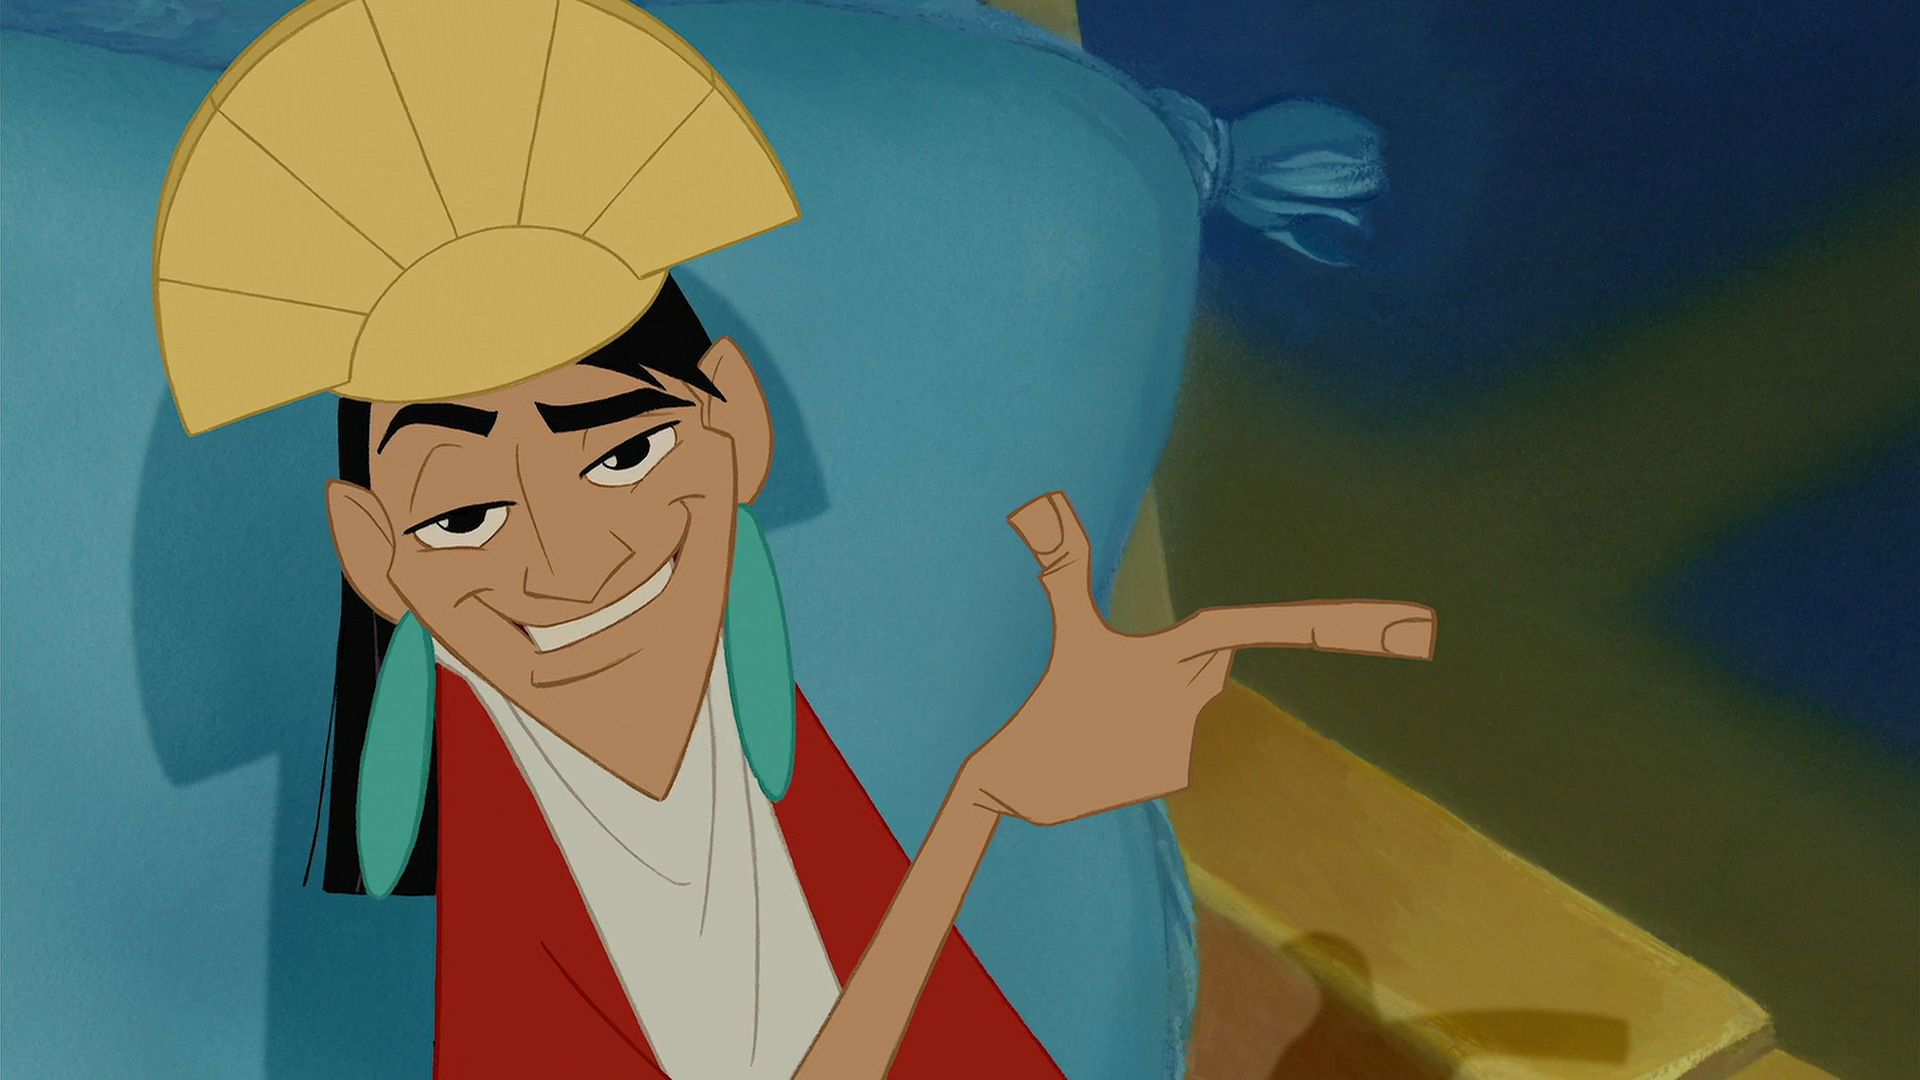 File:Kuzco-leading-men-of-disney-11013186-720-480.jpg